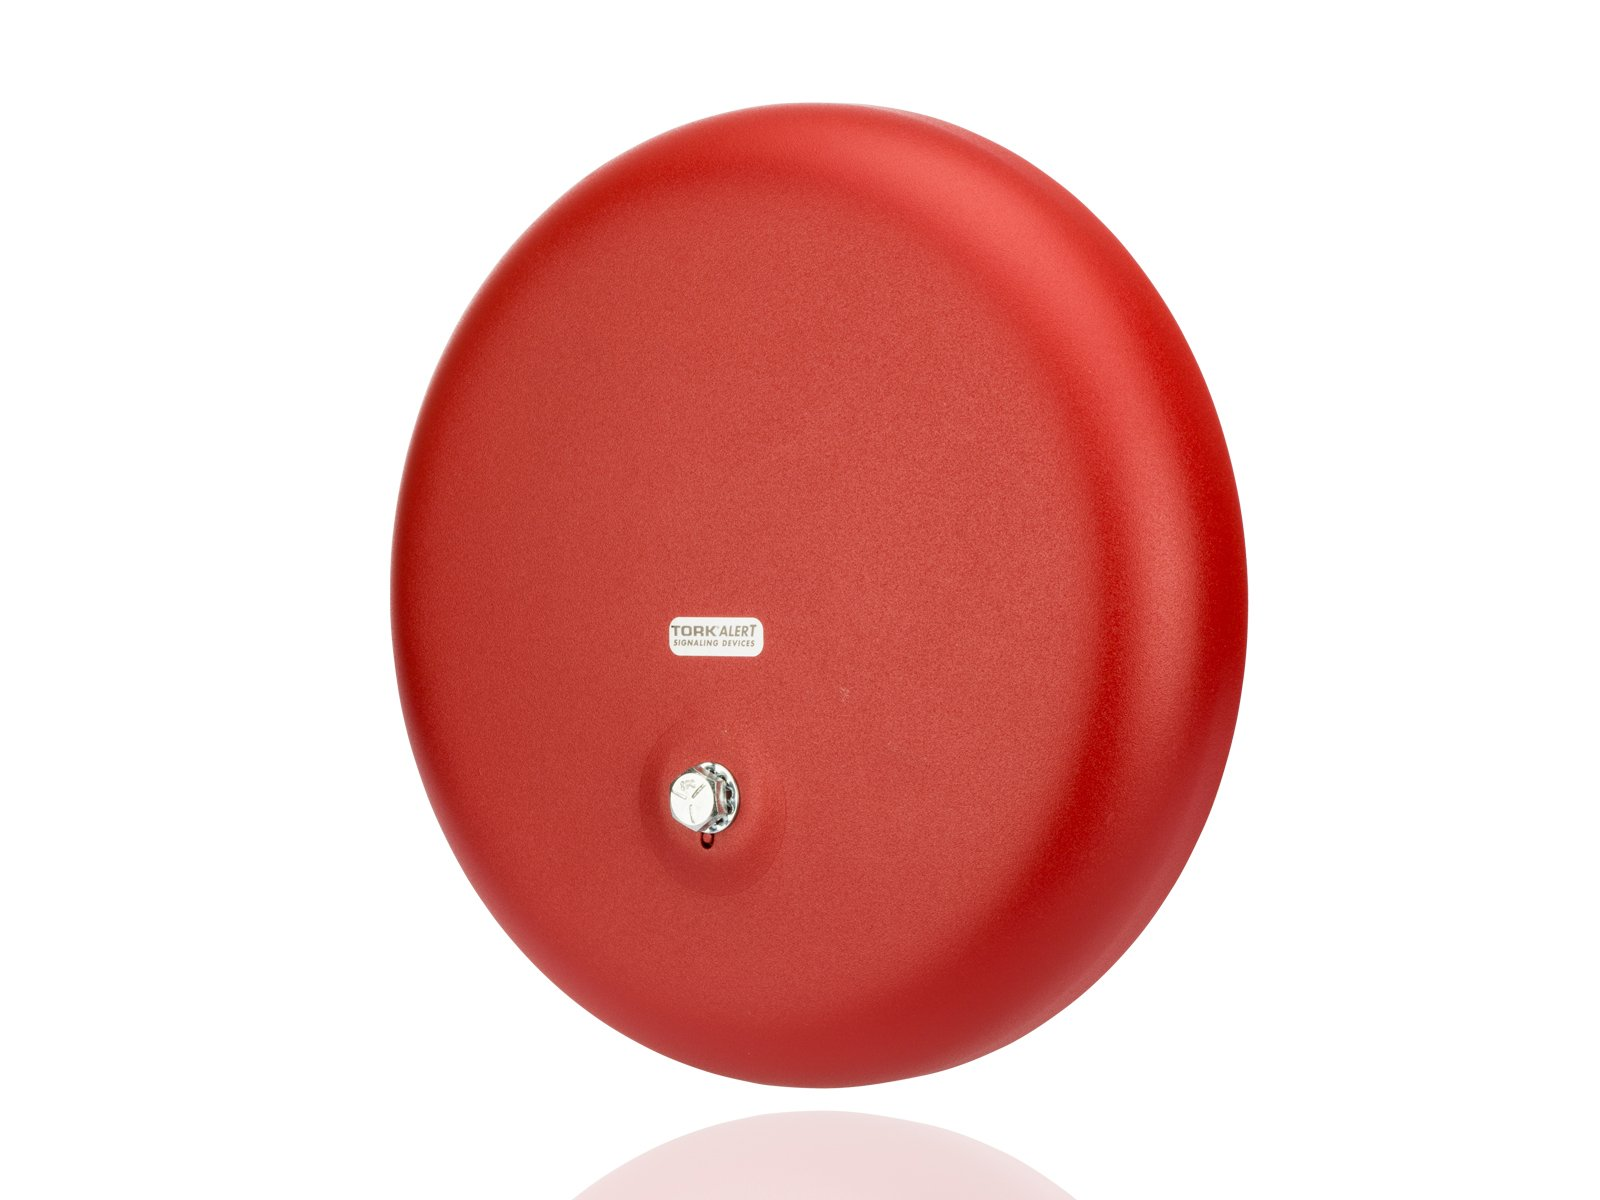 Steel/Aluminum Heavy Duty AC Vibrating Bell, 10'' Shell Size, 120 VAC, 0.065 Amp Input Current, Red